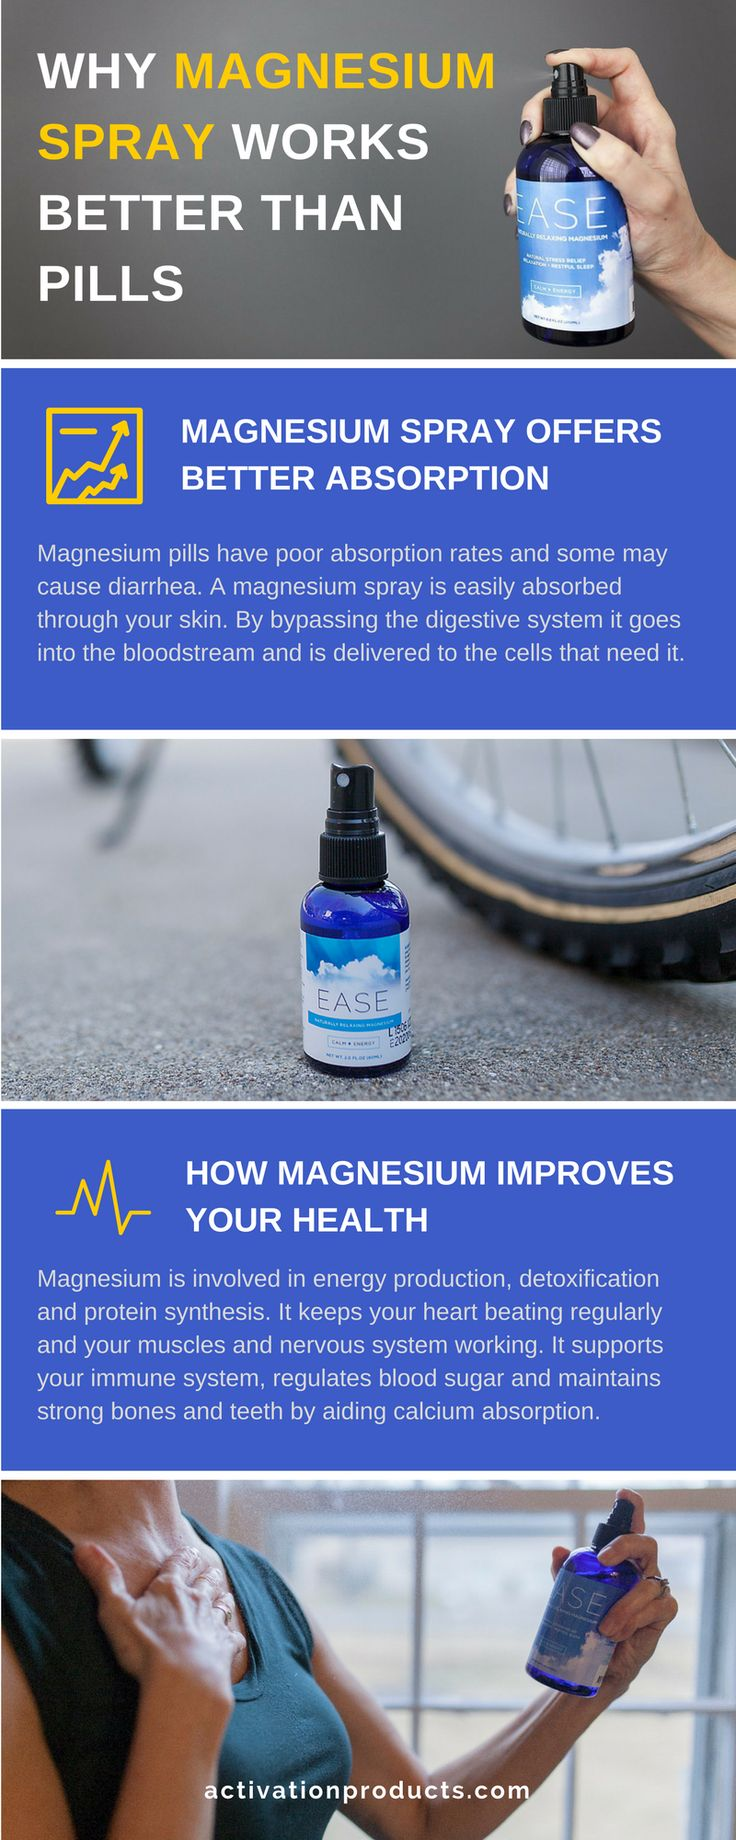 Oral magnesium supplements are known to have poor absorption rates, and some may cause diarrhea and other gastrointestinal problems in larger doses. One of the big benefits of a magnesium spray is how effectively it is absorbed when it's sprayed onto the skin. By bypassing the digestive system it goes straight into the bloodstream and is delivered to the cells that need it. Find out more about our EASE Magnesium spray by following the link.